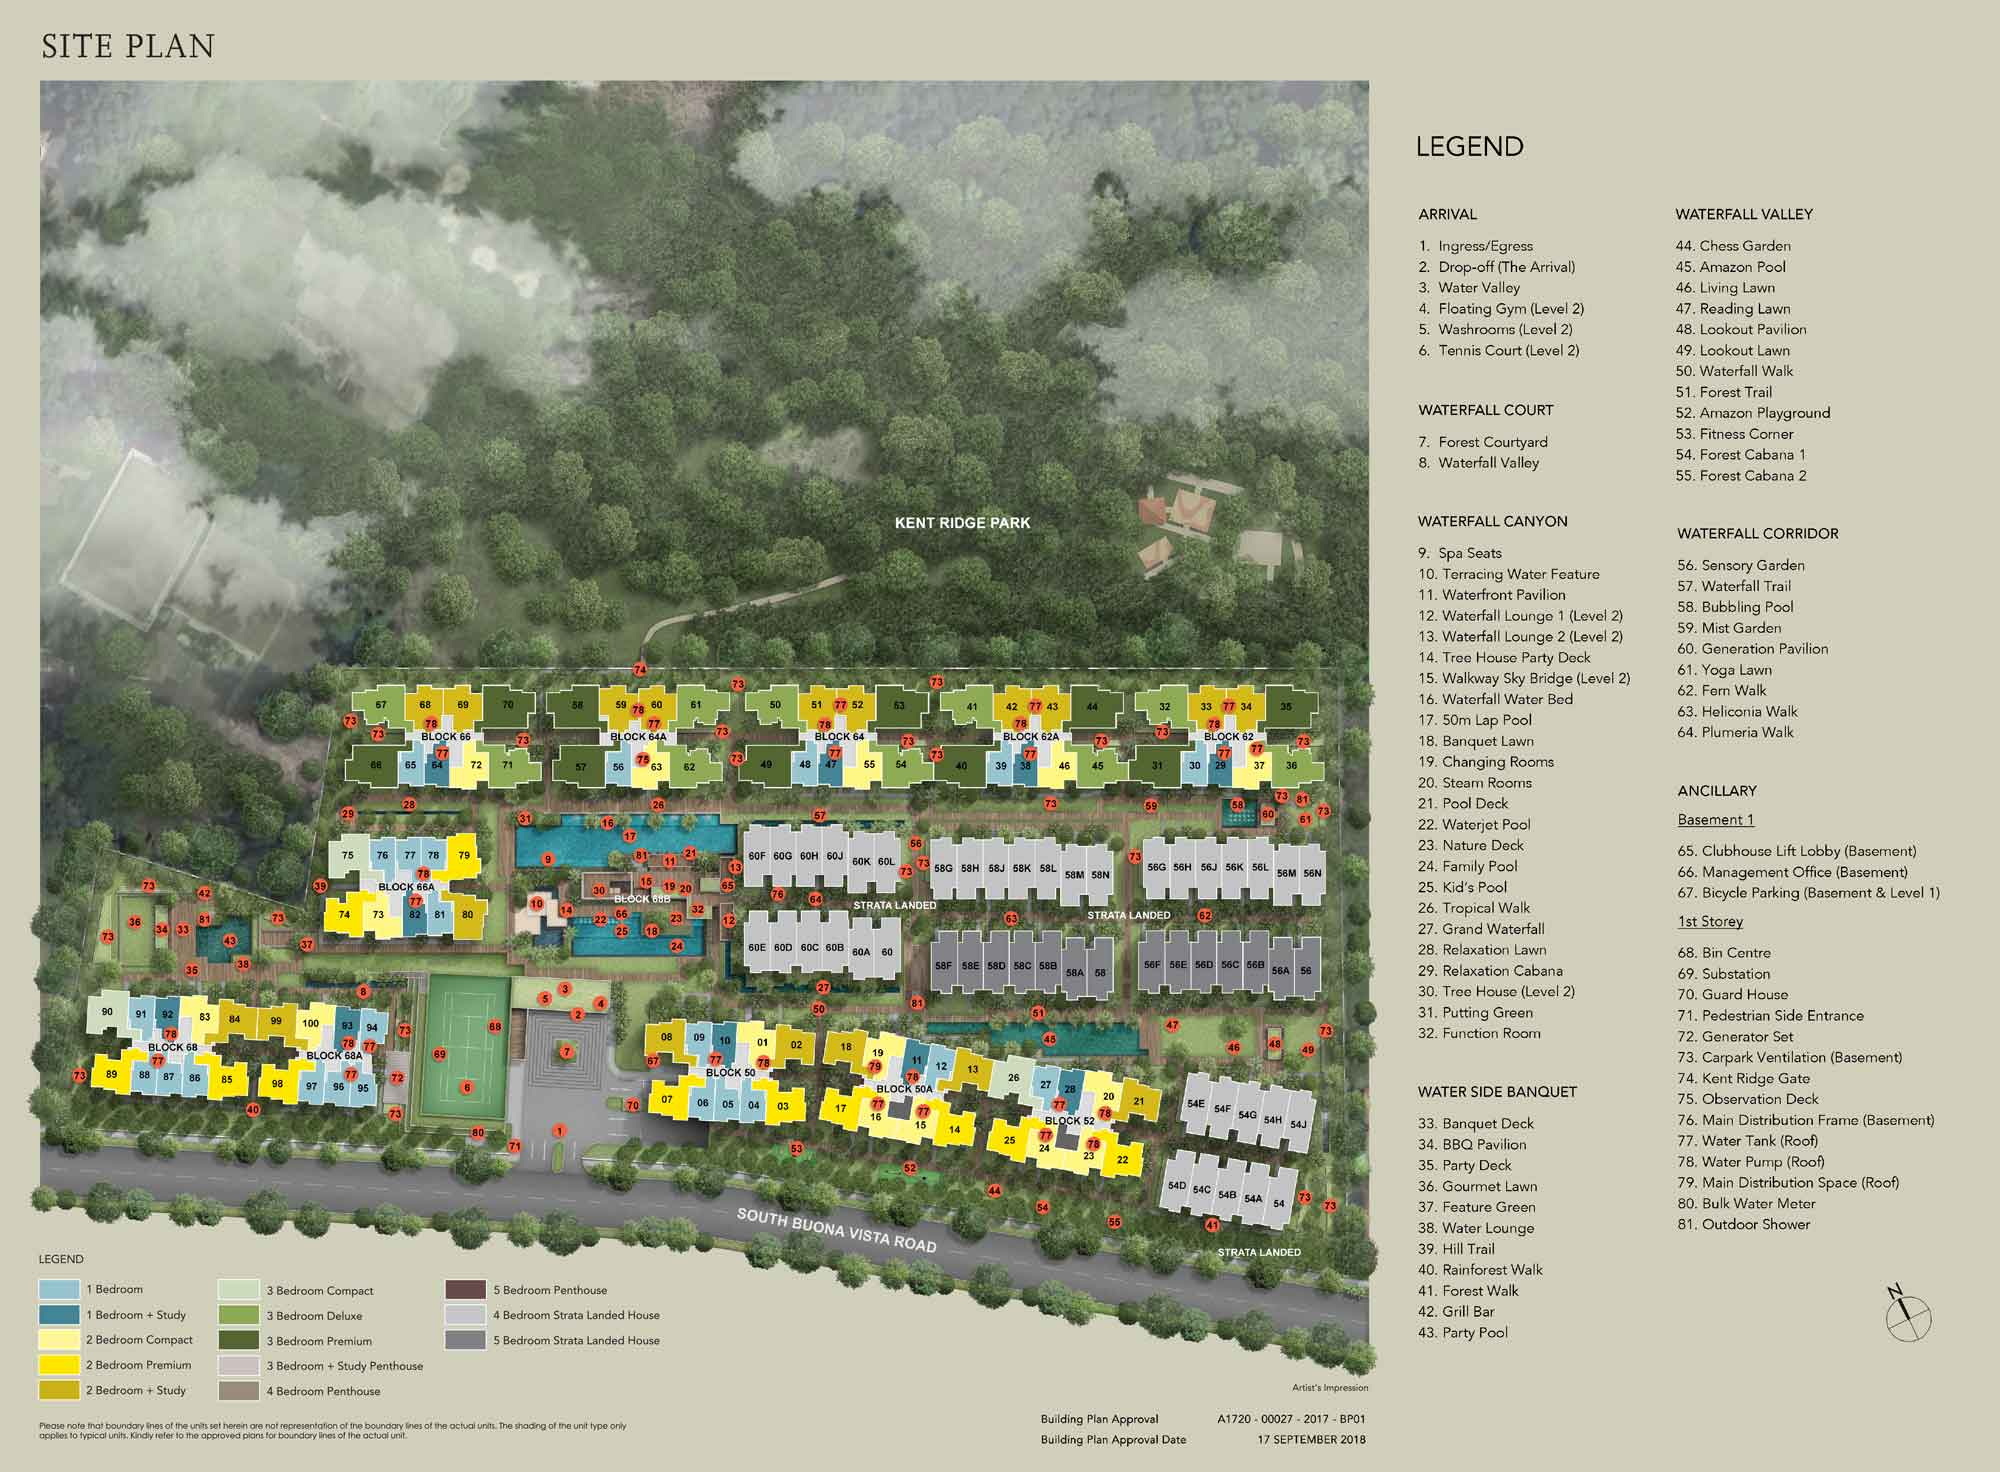 Siteplan Kent Ridge Hill Residences